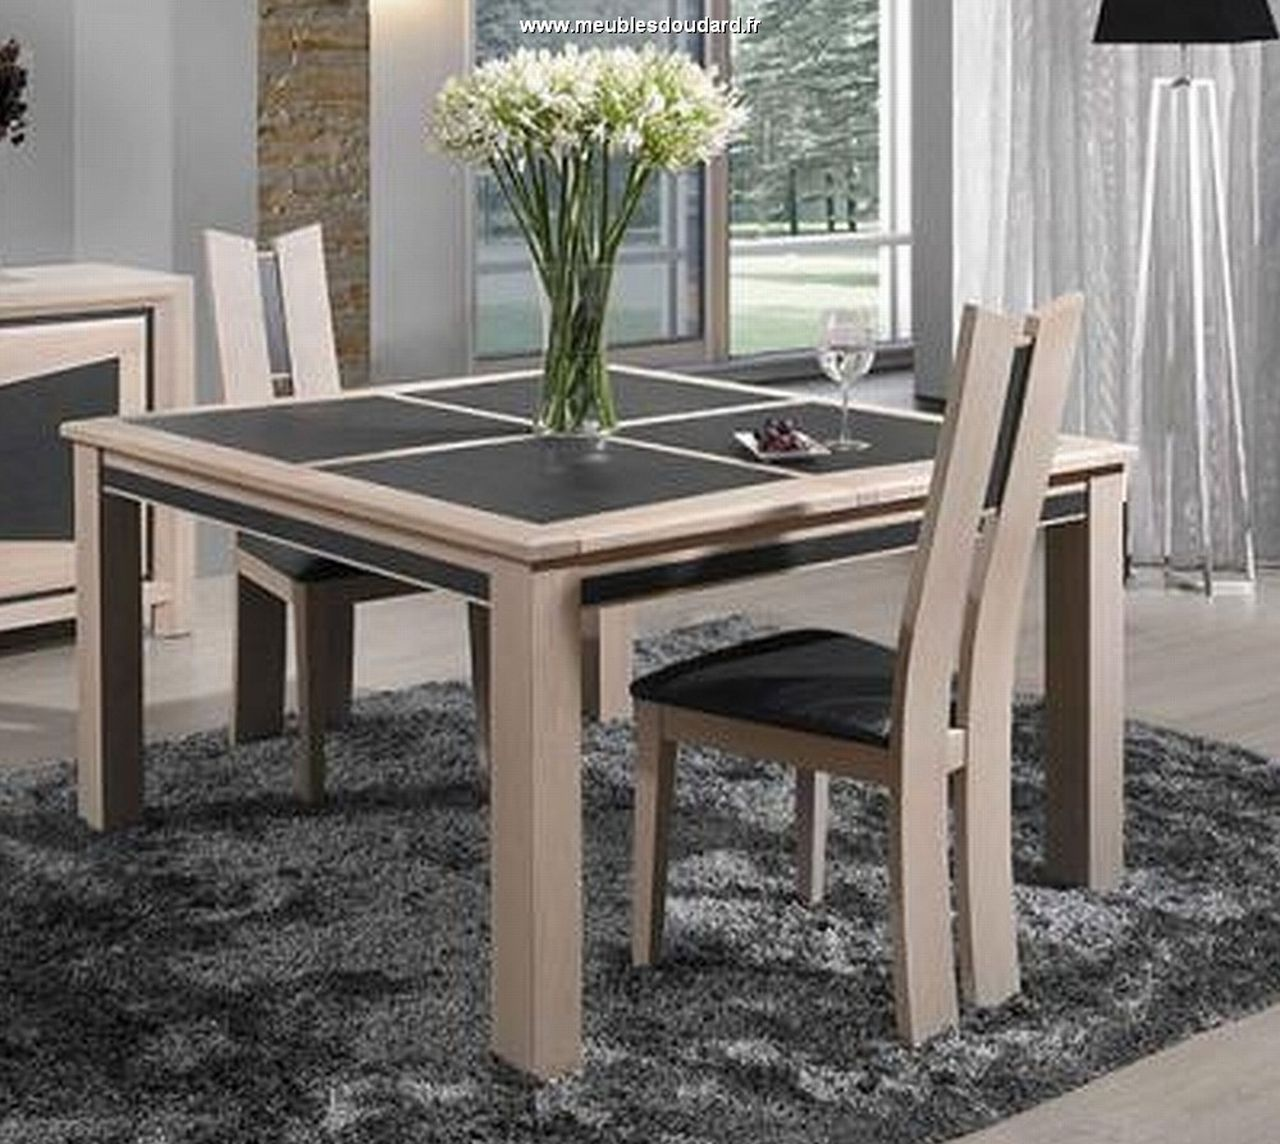 Table carr e dessus c ramique for Table carree 8 personnes avec rallonge